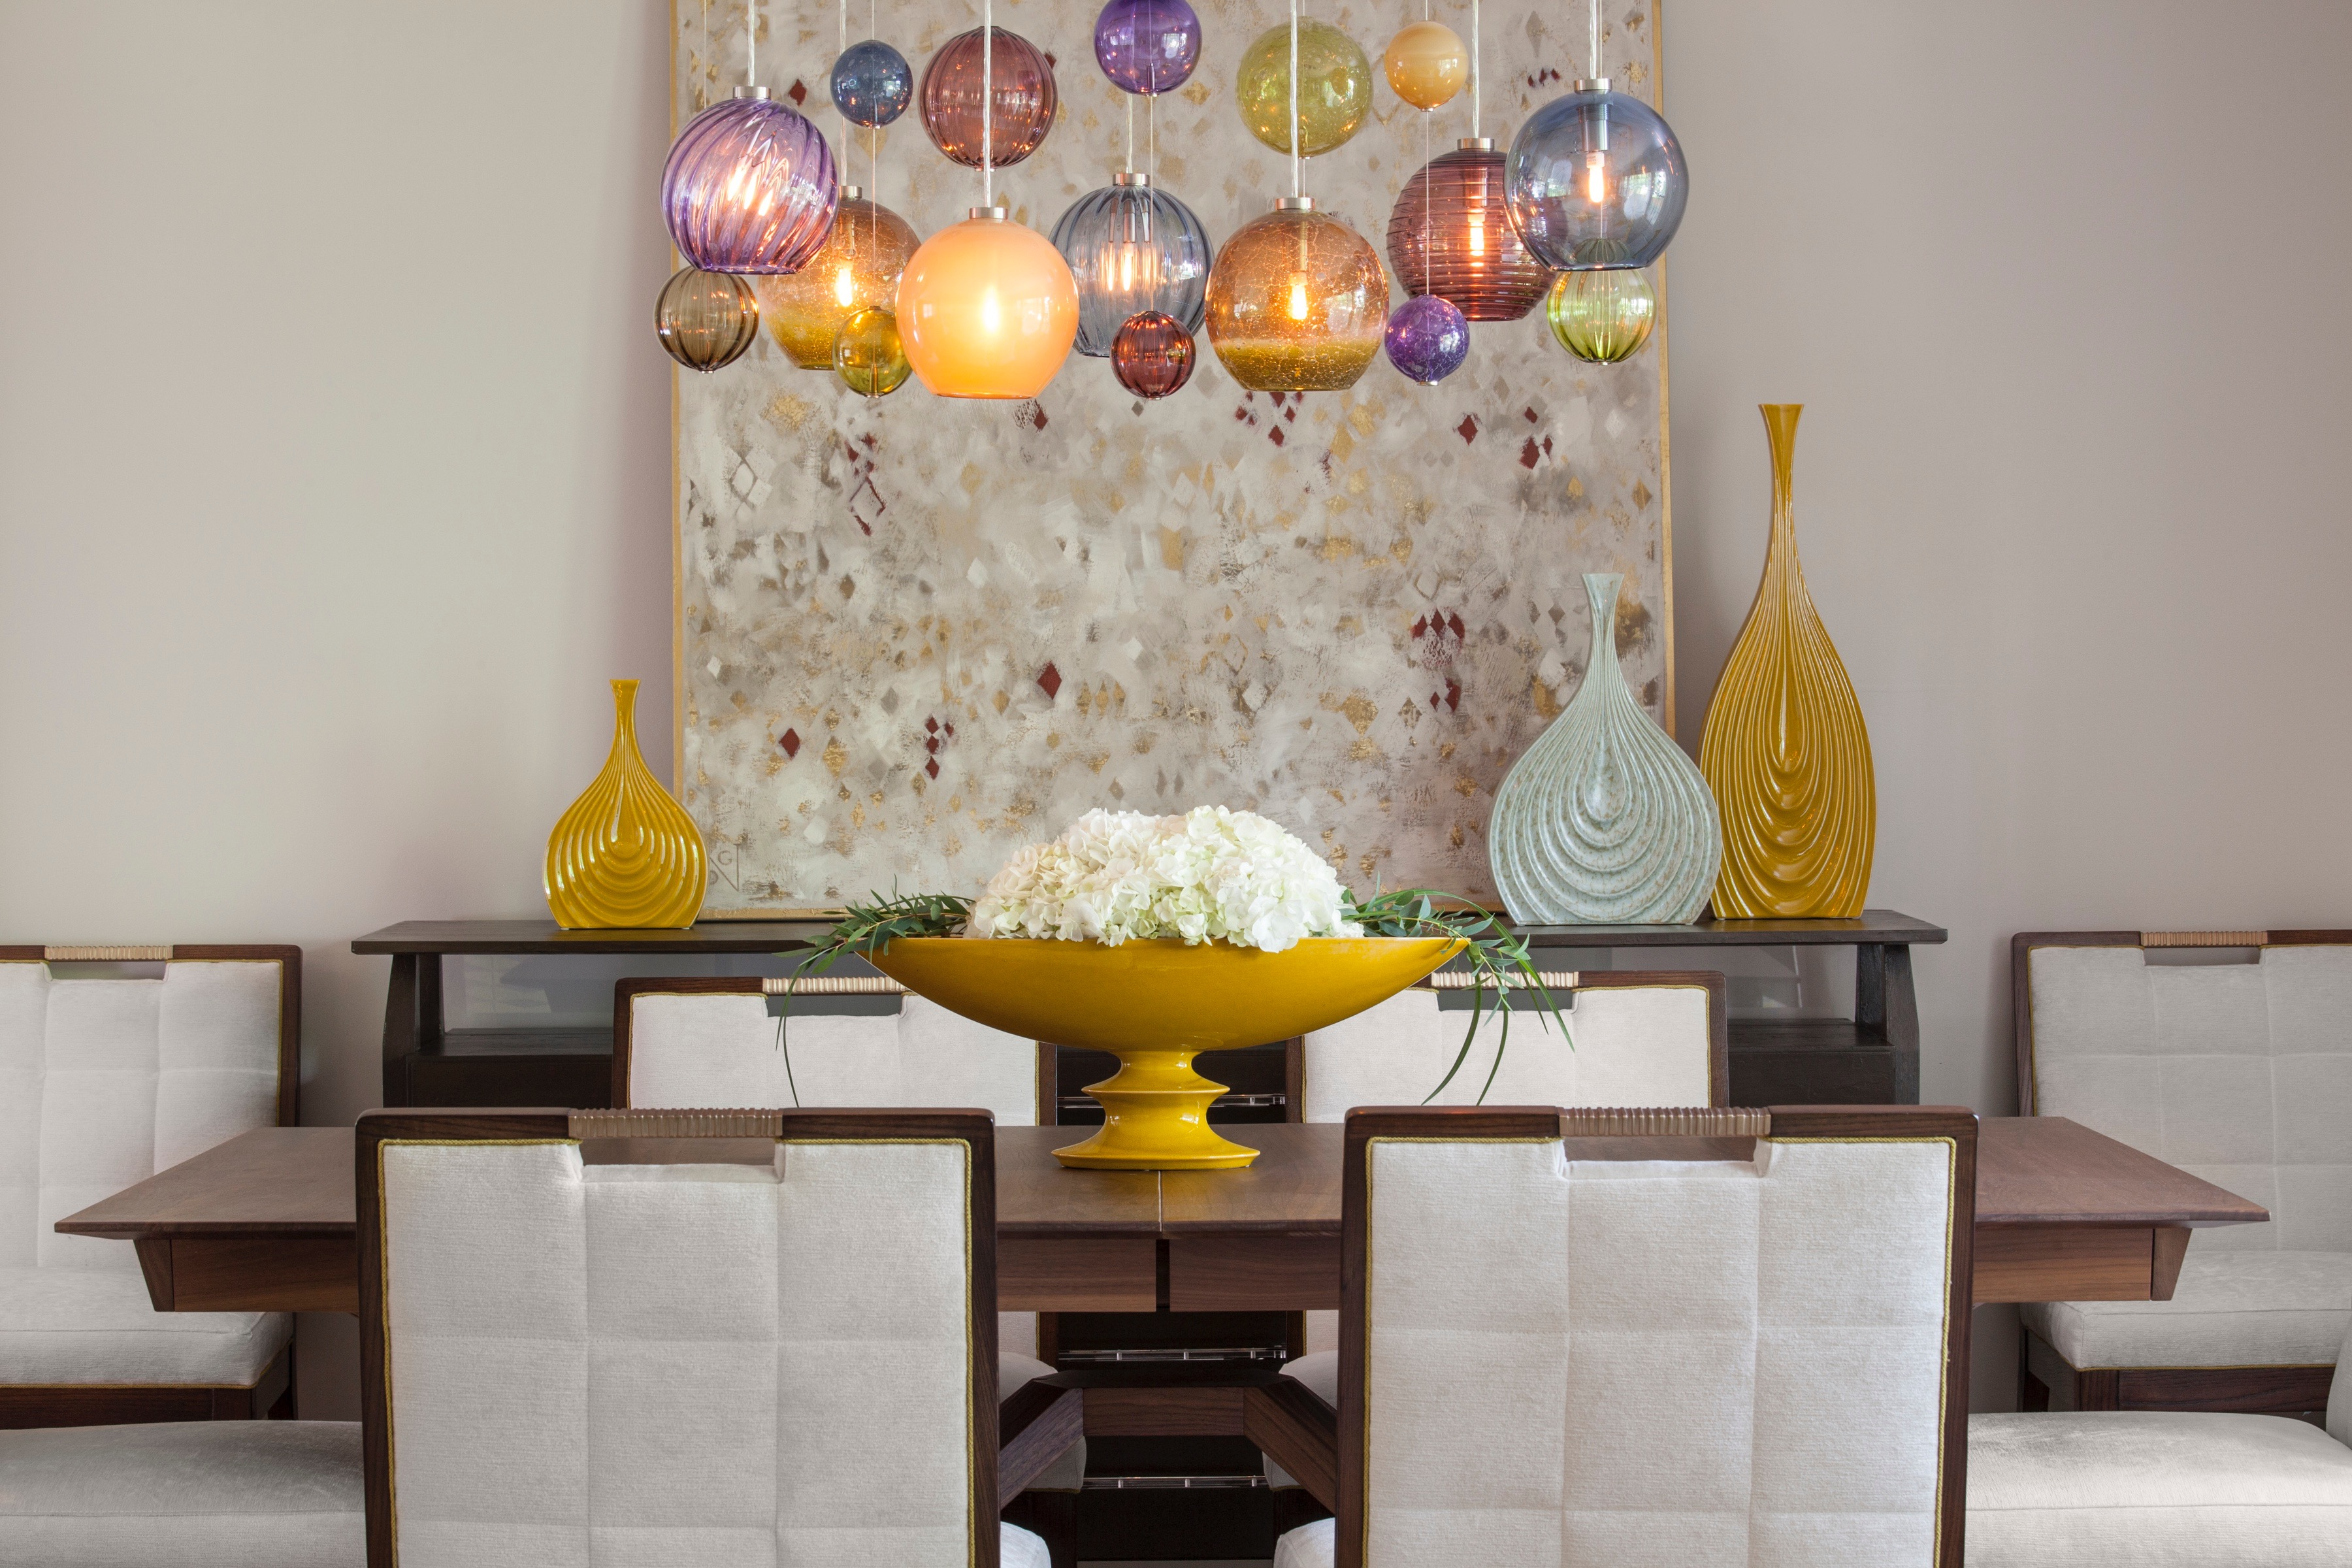 Samantha-Friedman-Interior-Design-Maryland-Dining-Space